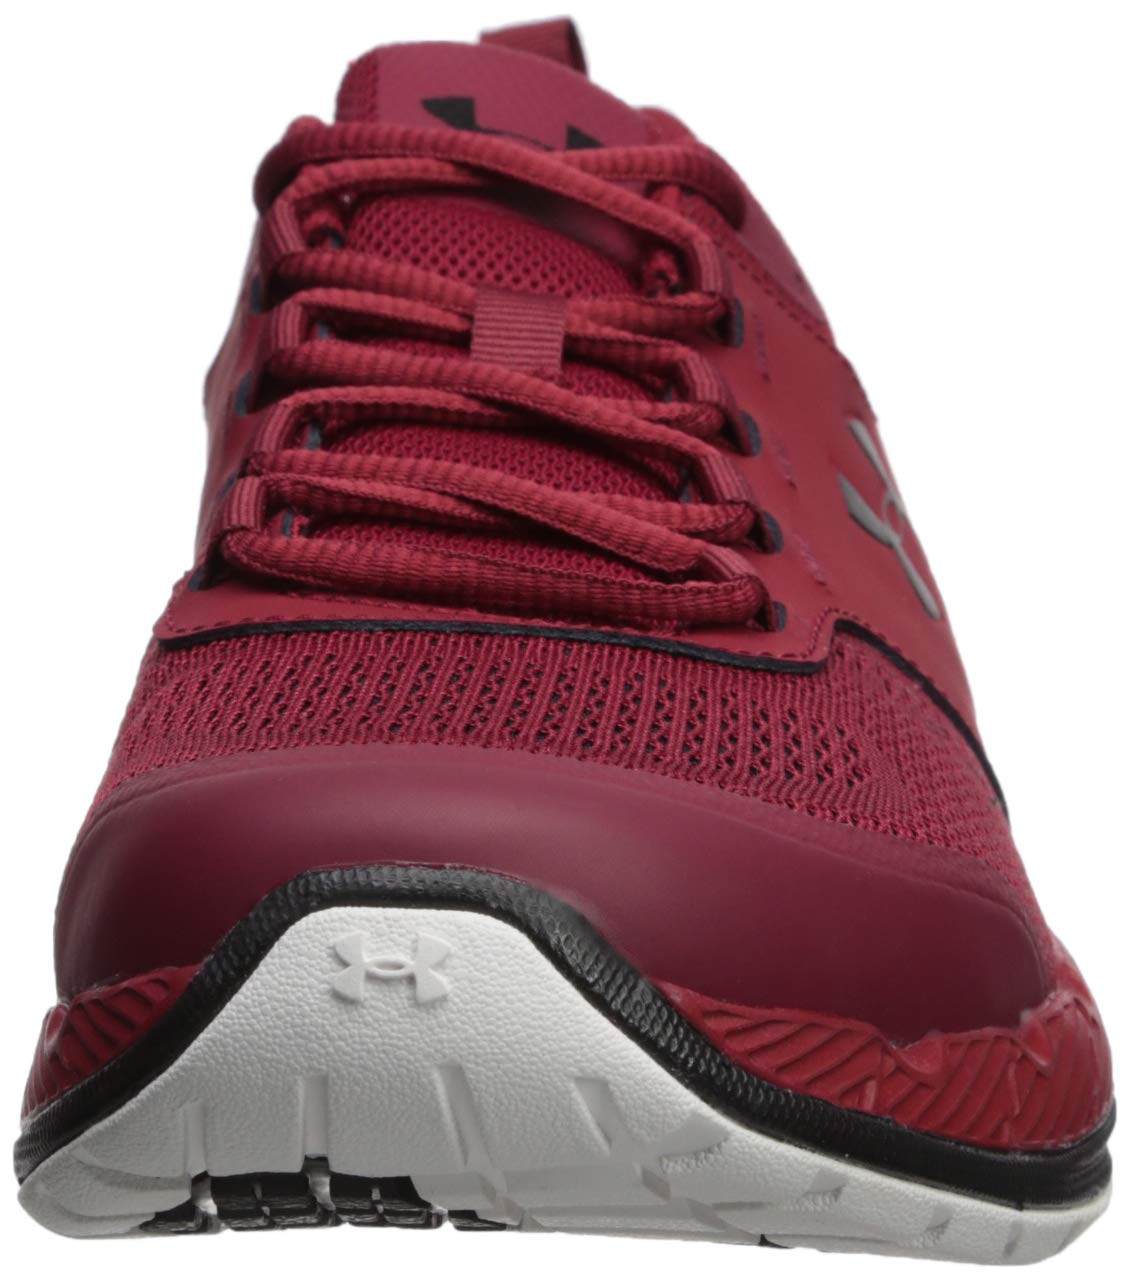 Under Armour Men's Commit TR EX Sneaker, Aruba Red (600)/Black, 7 M US by Under Armour (Image #4)